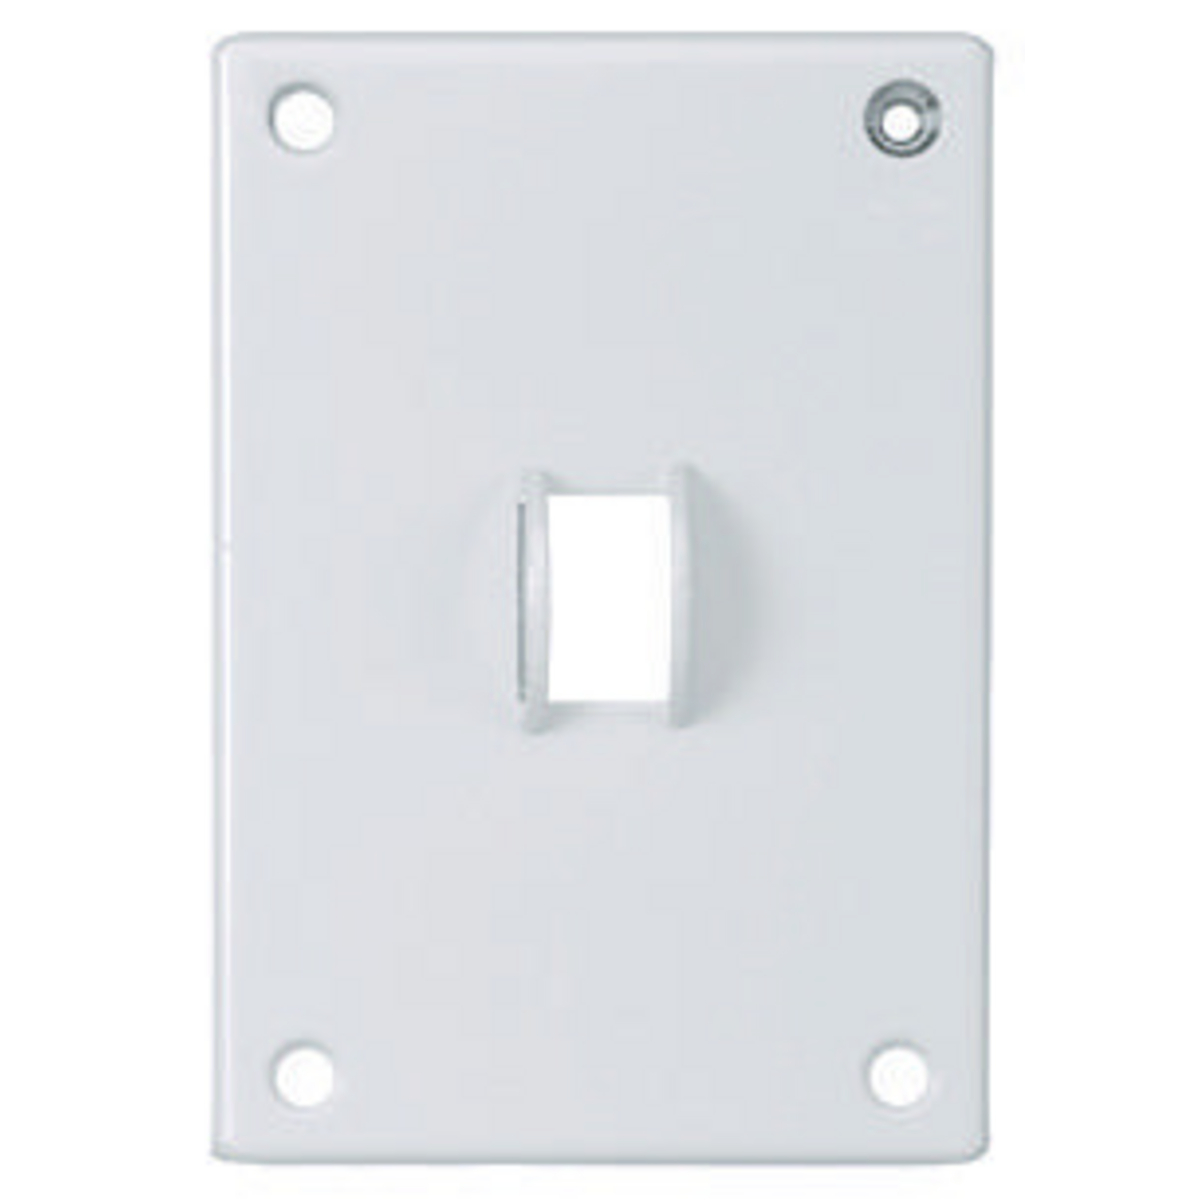 Hubbell SWP1 SEC WALLPLATE, 1-G, SWITCH, WH